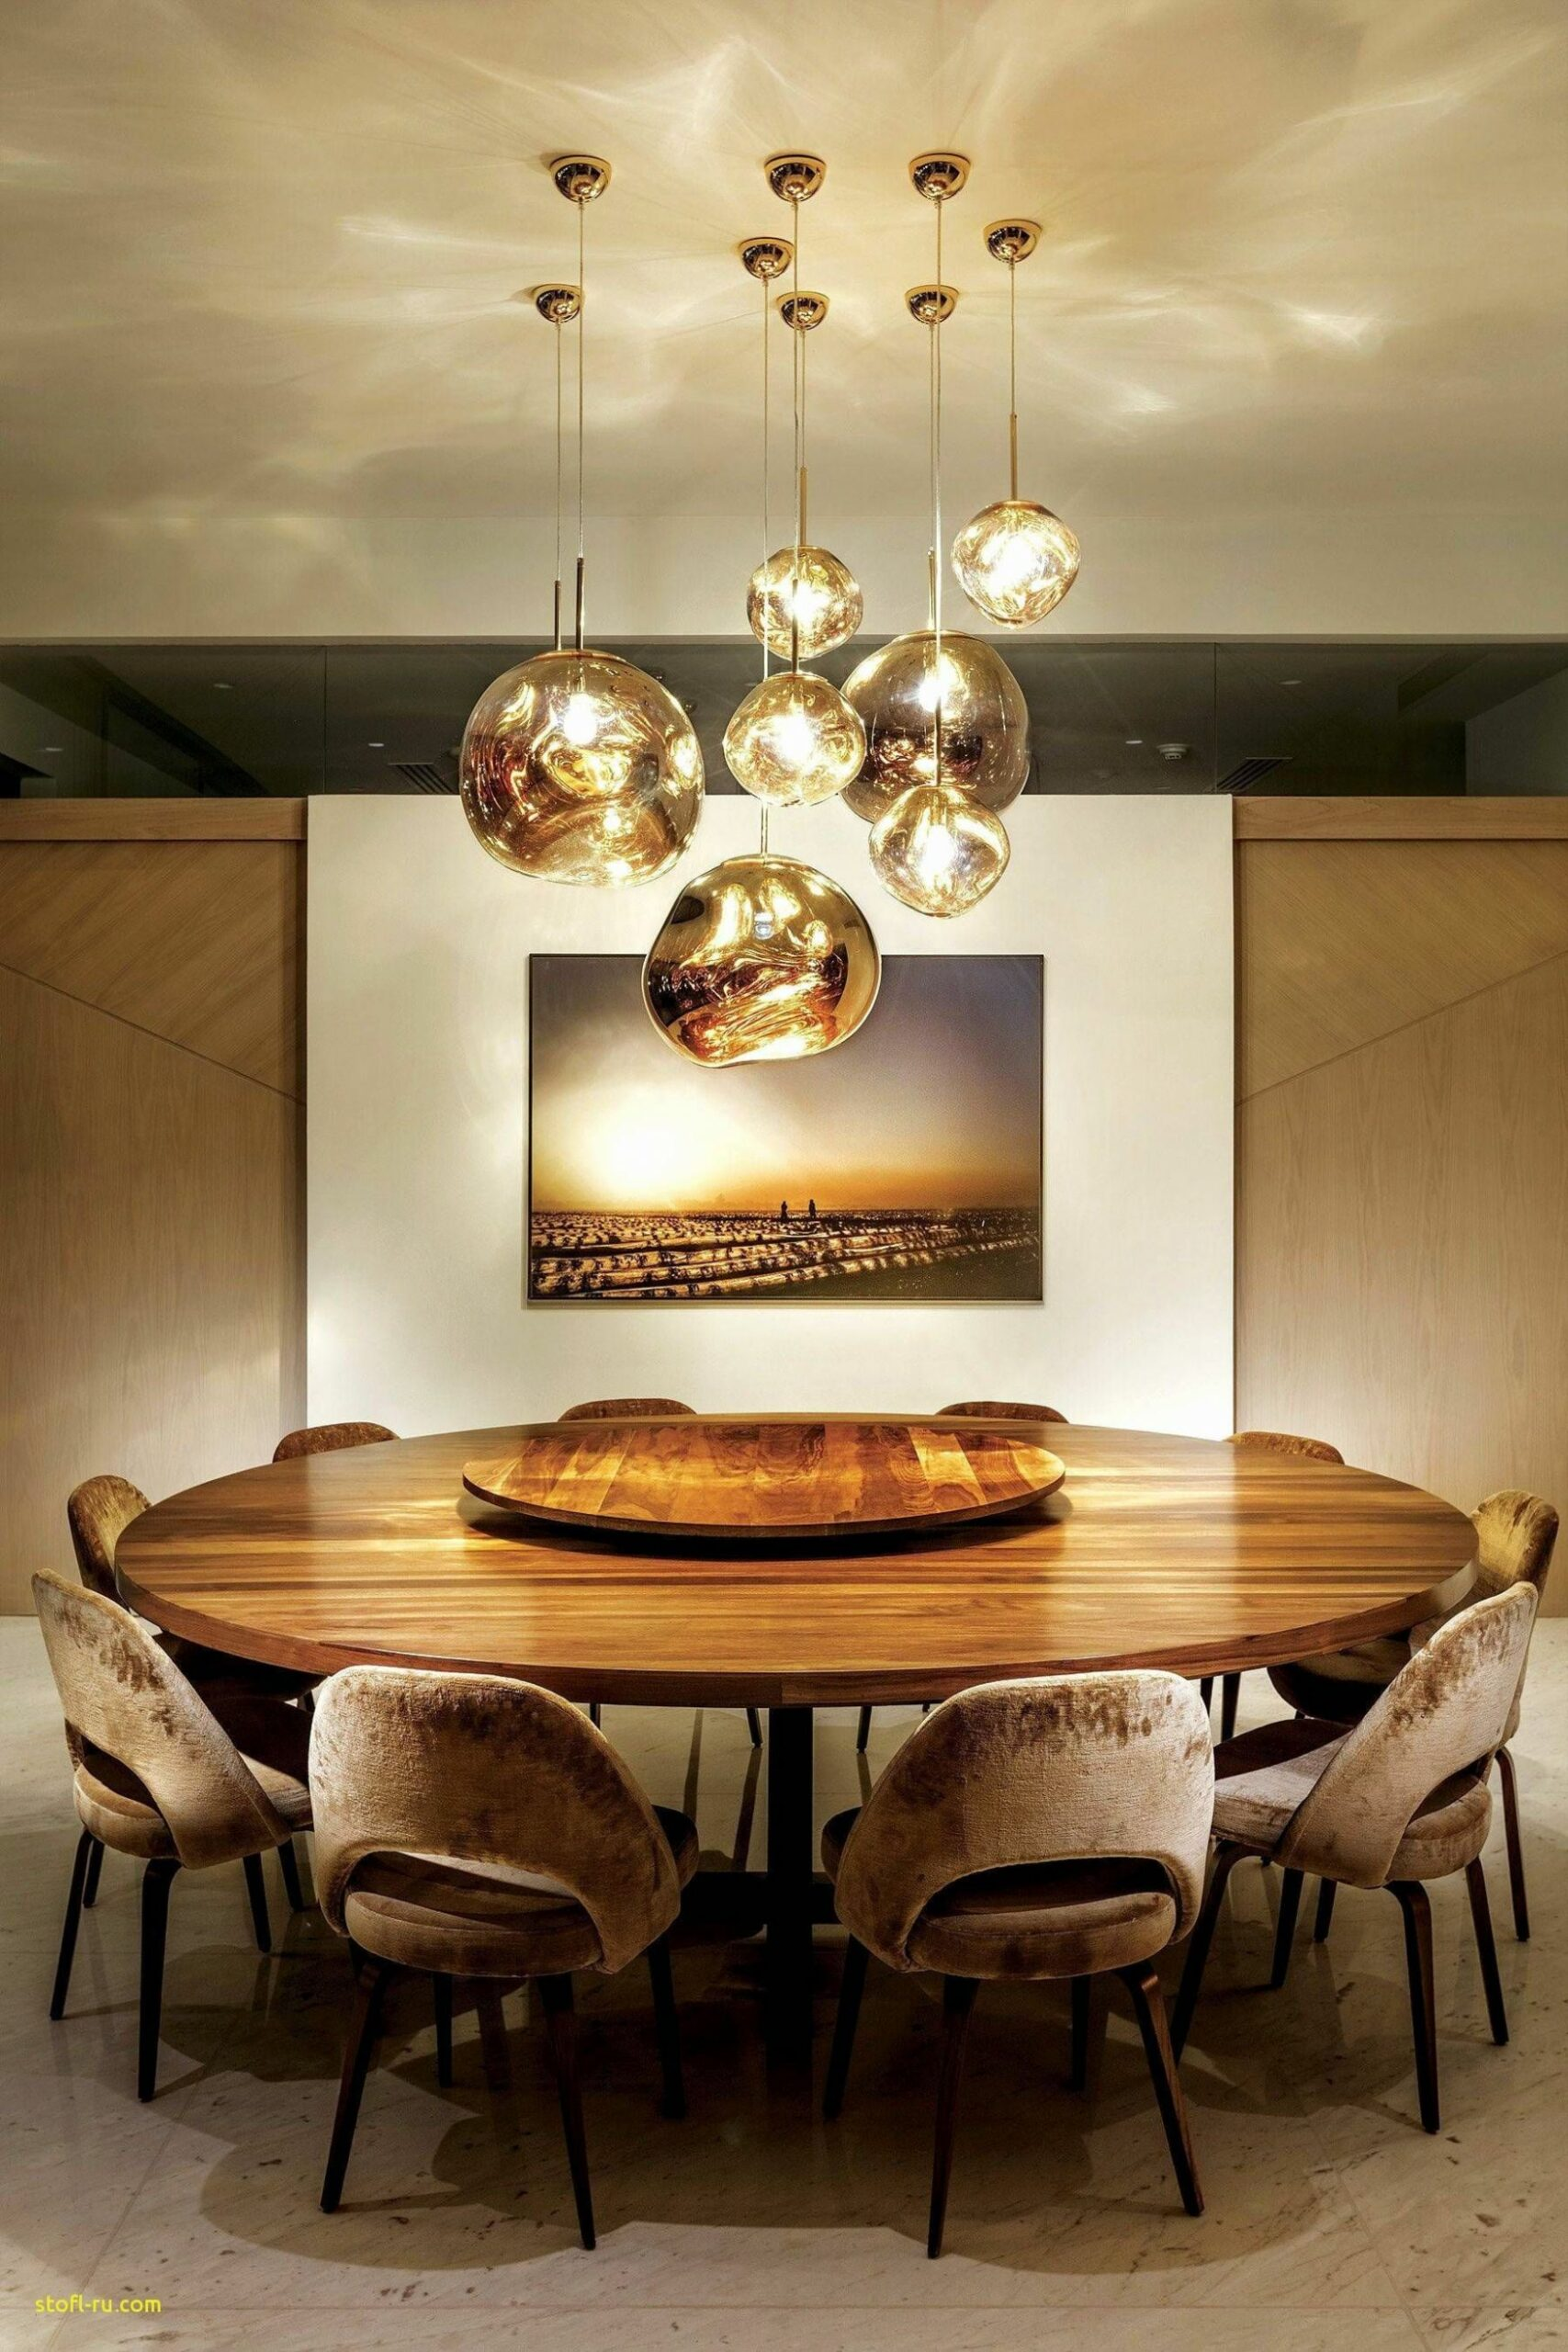 Houzz Dining Chairs in 12 | Dining room table decor, Round ..